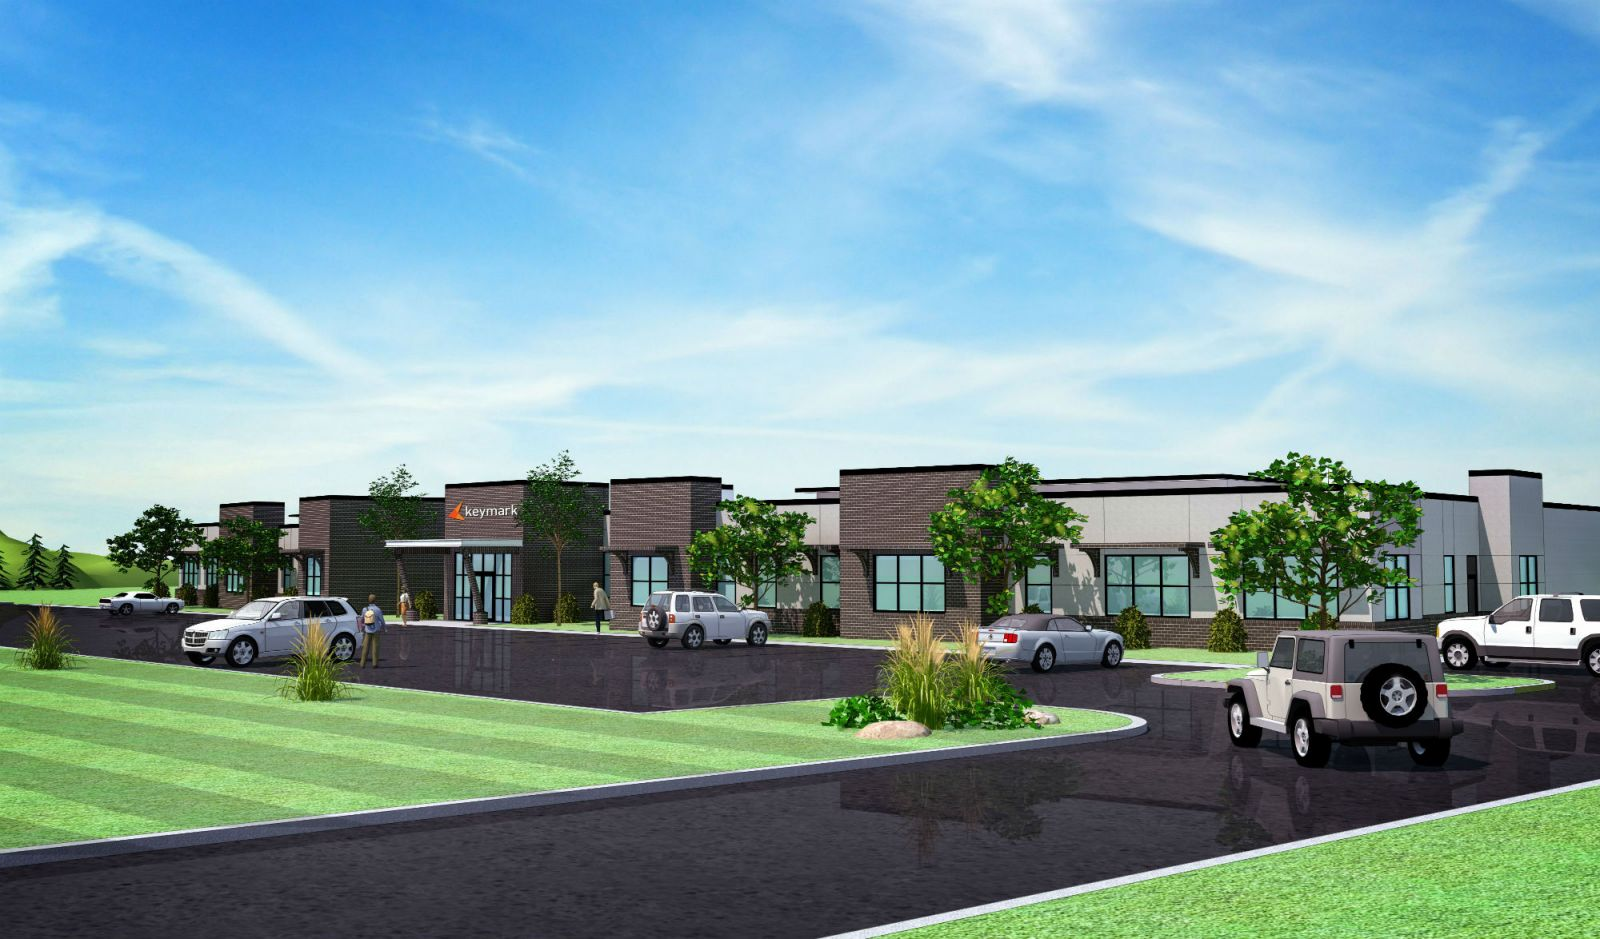 This is a rendering of the new KeyMark building that will be located at the Pickens County Commerce Park. The company is expanding its operations to include a 22,000-square-foot building and the addition of 110 new employees. (Rendering/Provided)